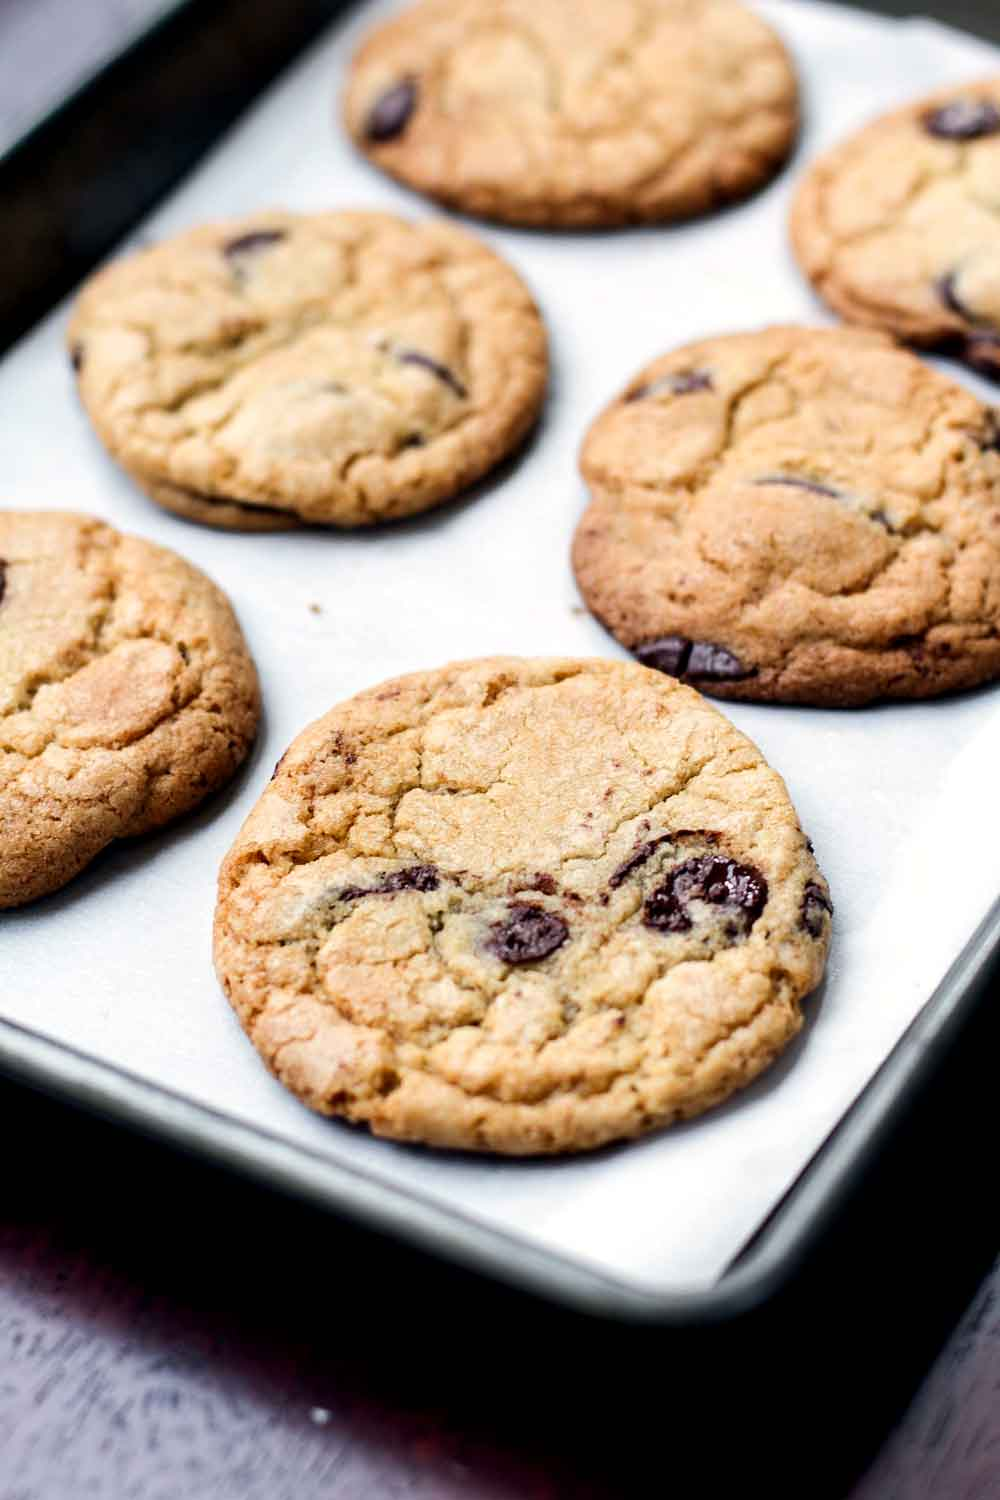 Baked chocolate chip cookies on a sheet pan lined with parchment paper